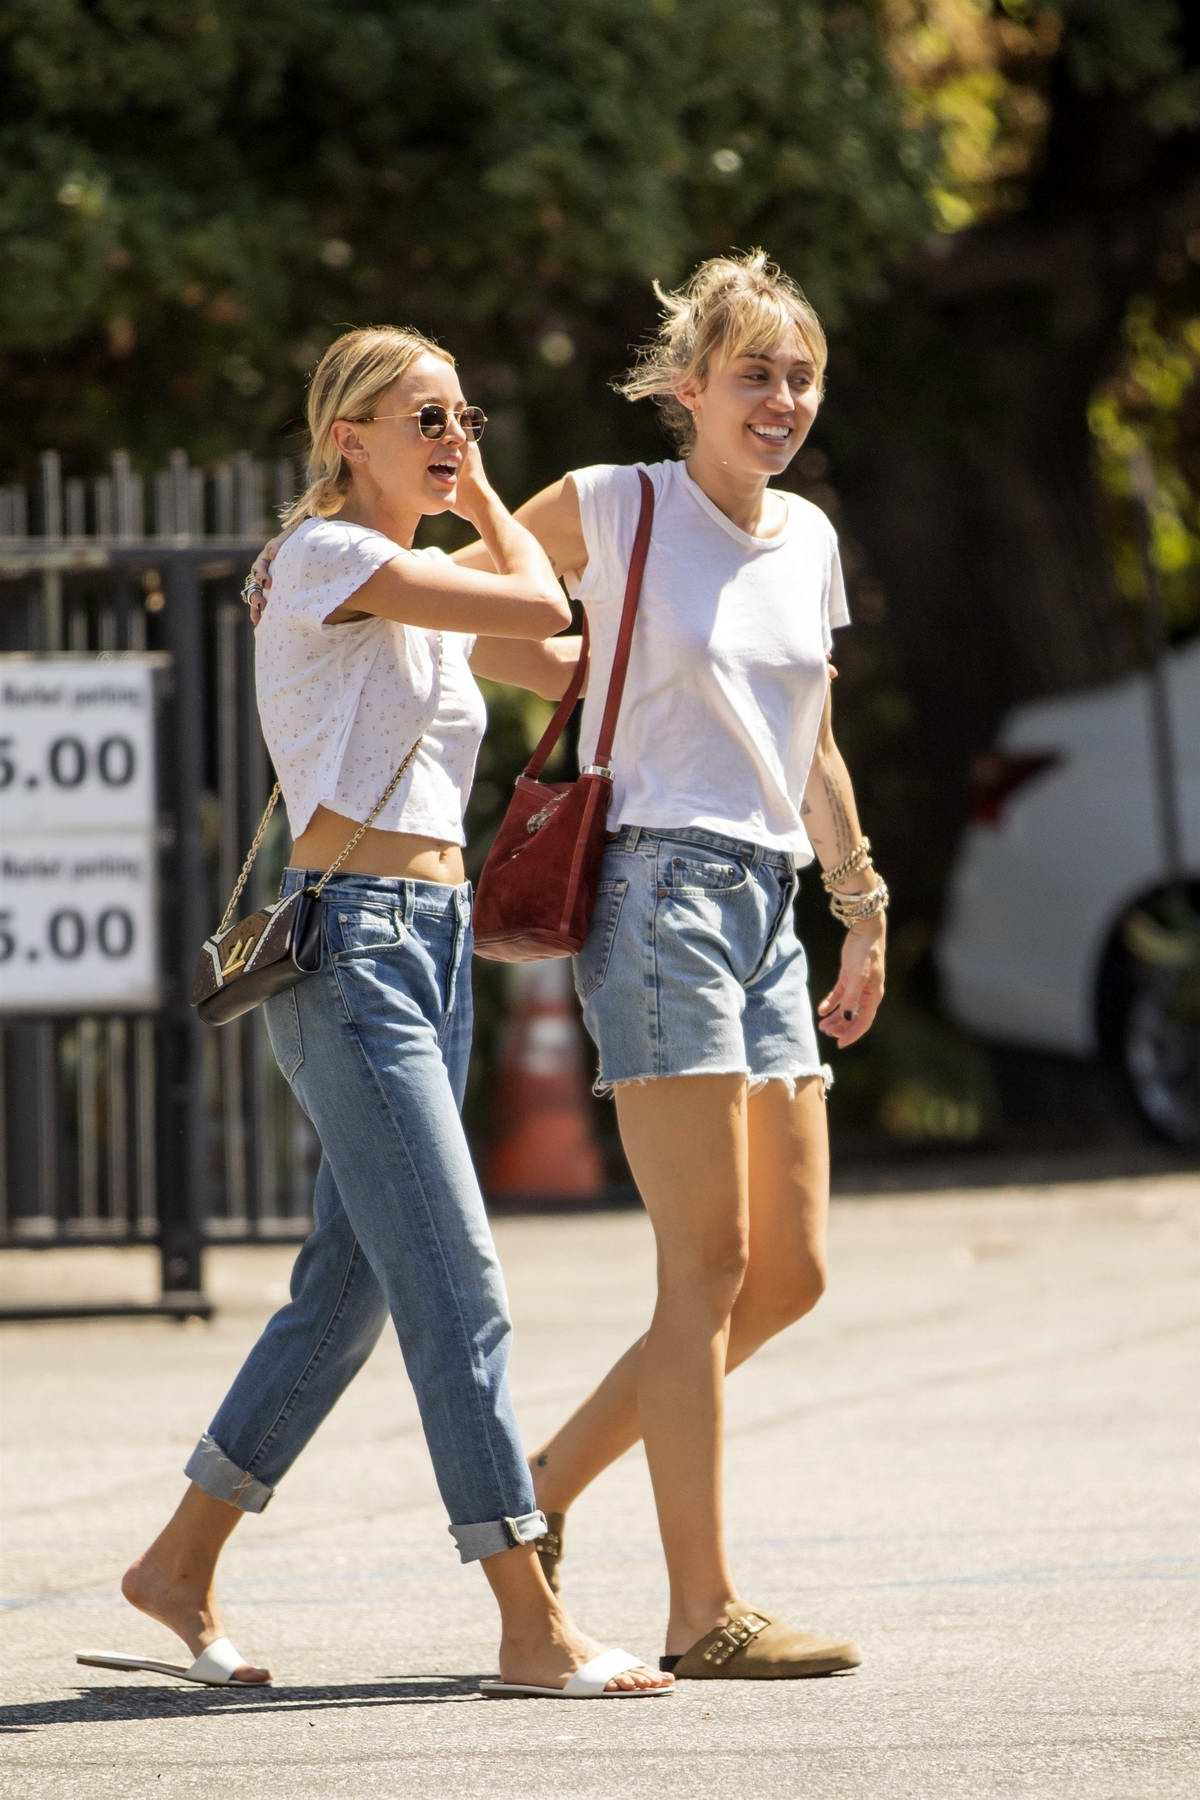 Miley Cyrus and Kaitlynn Carter are all smiles as they grab lunch in Los Angeles